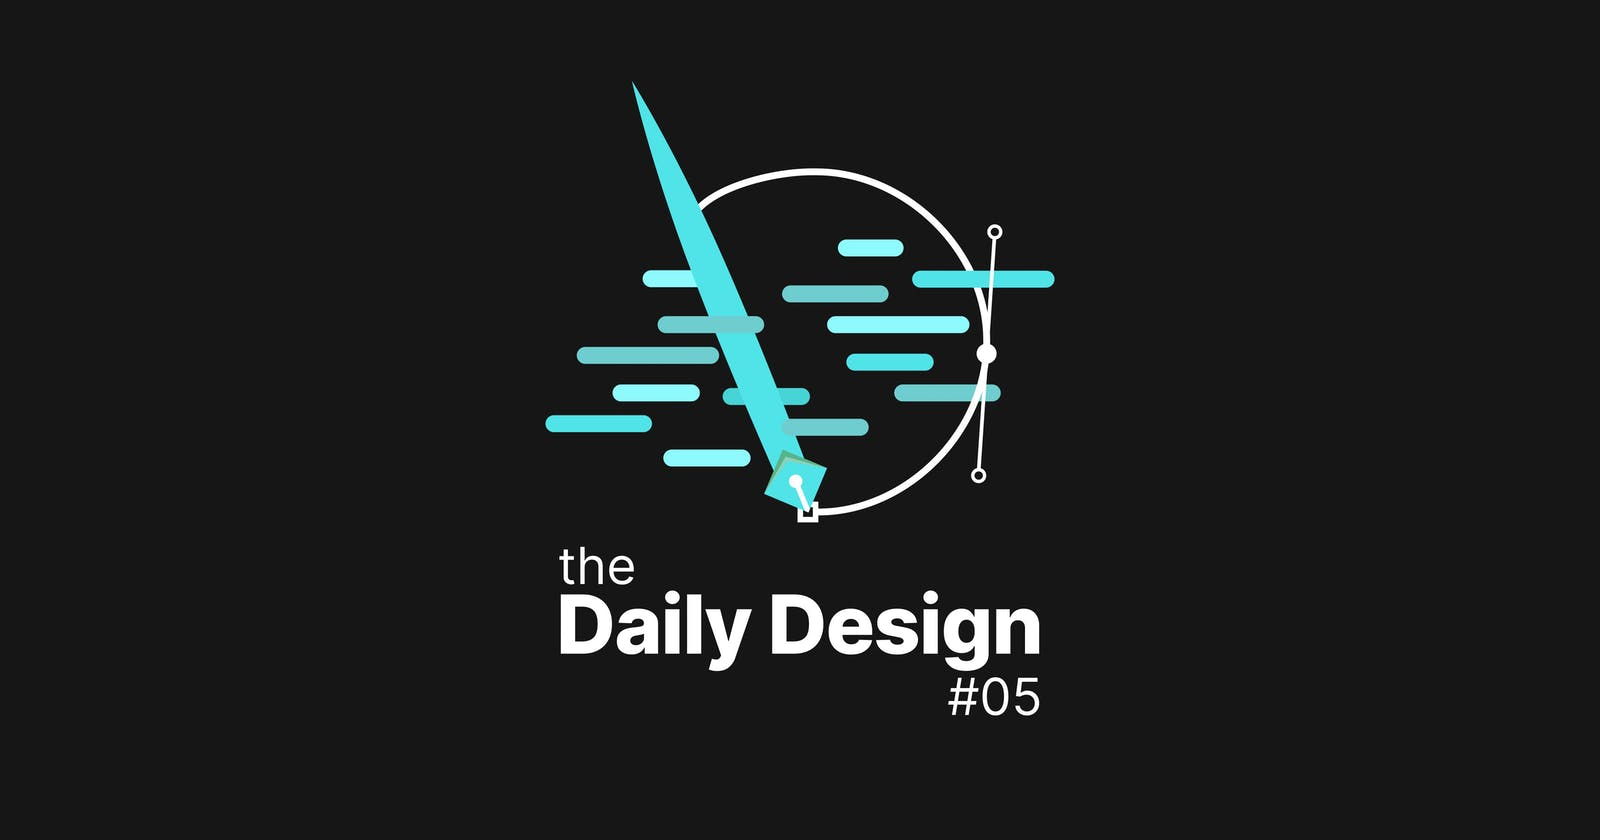 The Daily Design #05